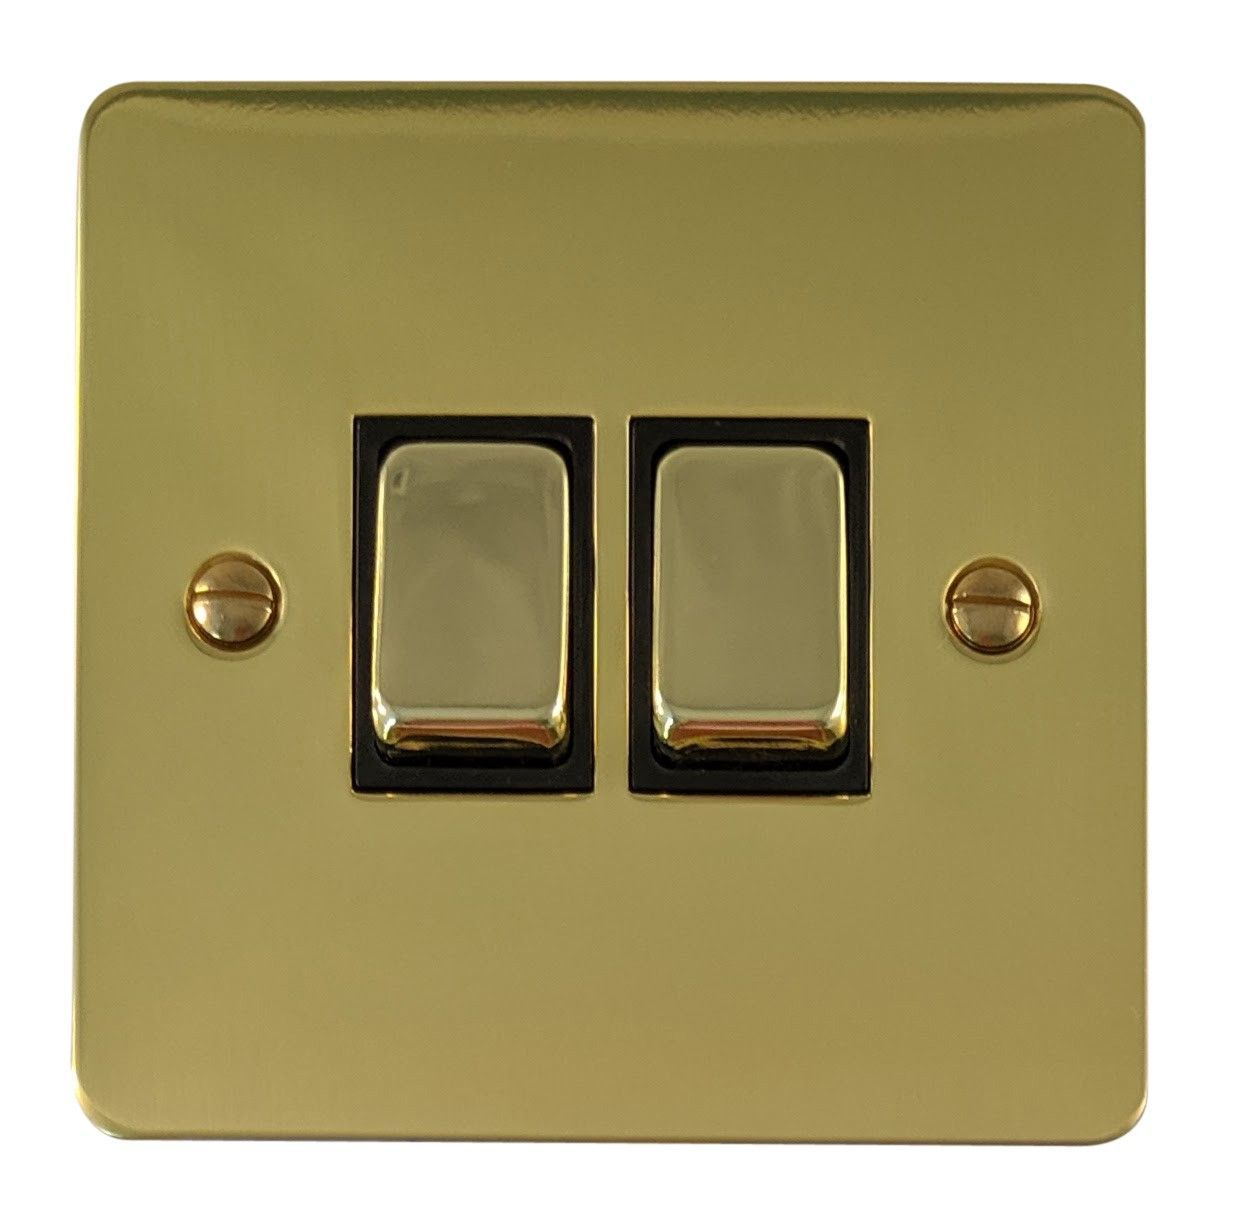 G&H FB302 Flat Plate Polished Brass 2 Gang 1 or 2 Way Rocker Light Switch